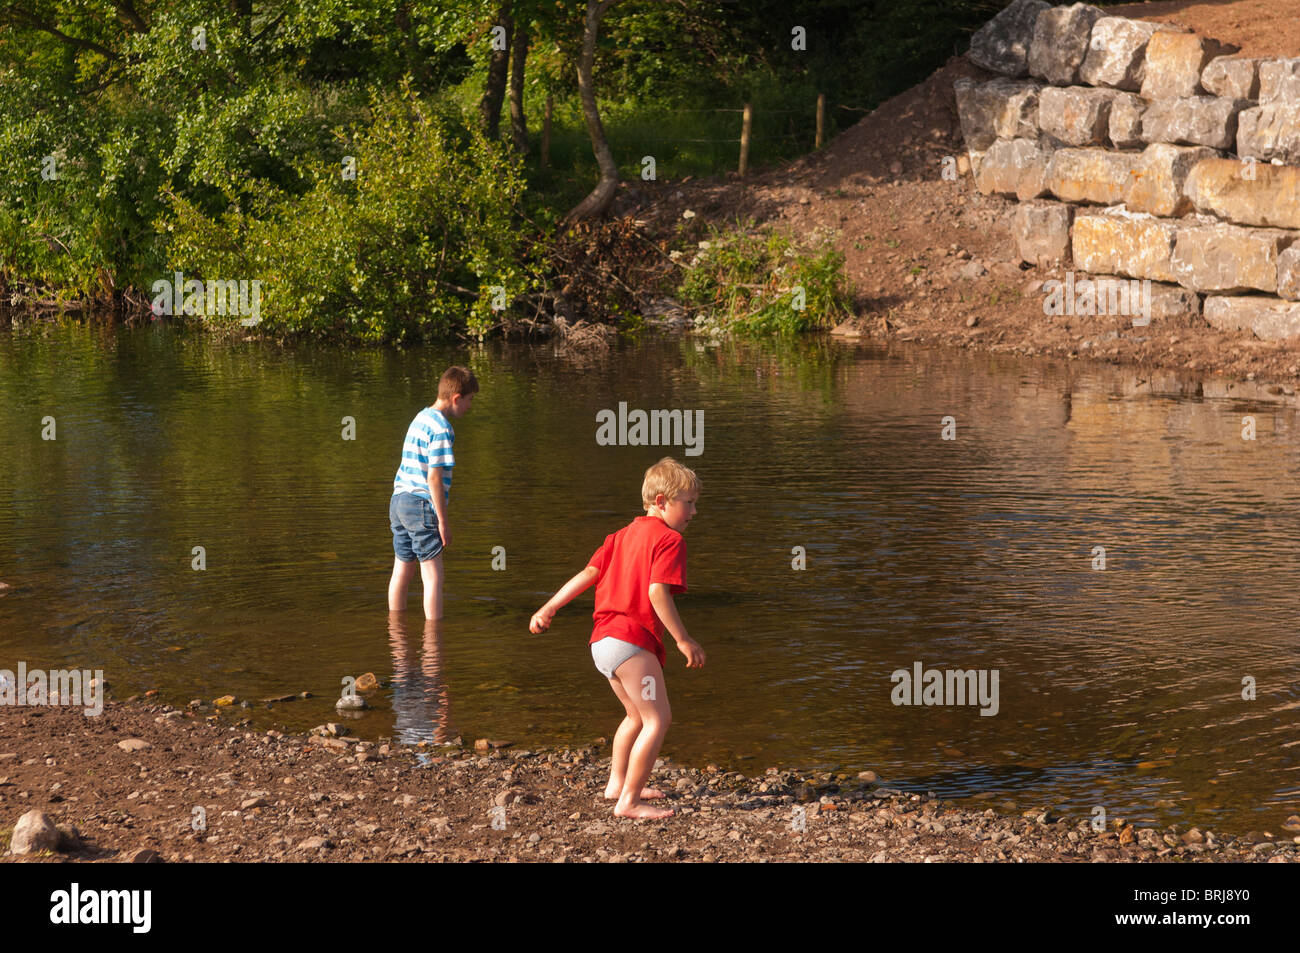 Two Model Released Boys 6 10 Play In The River Ehen In  # Modele Banc En Bois